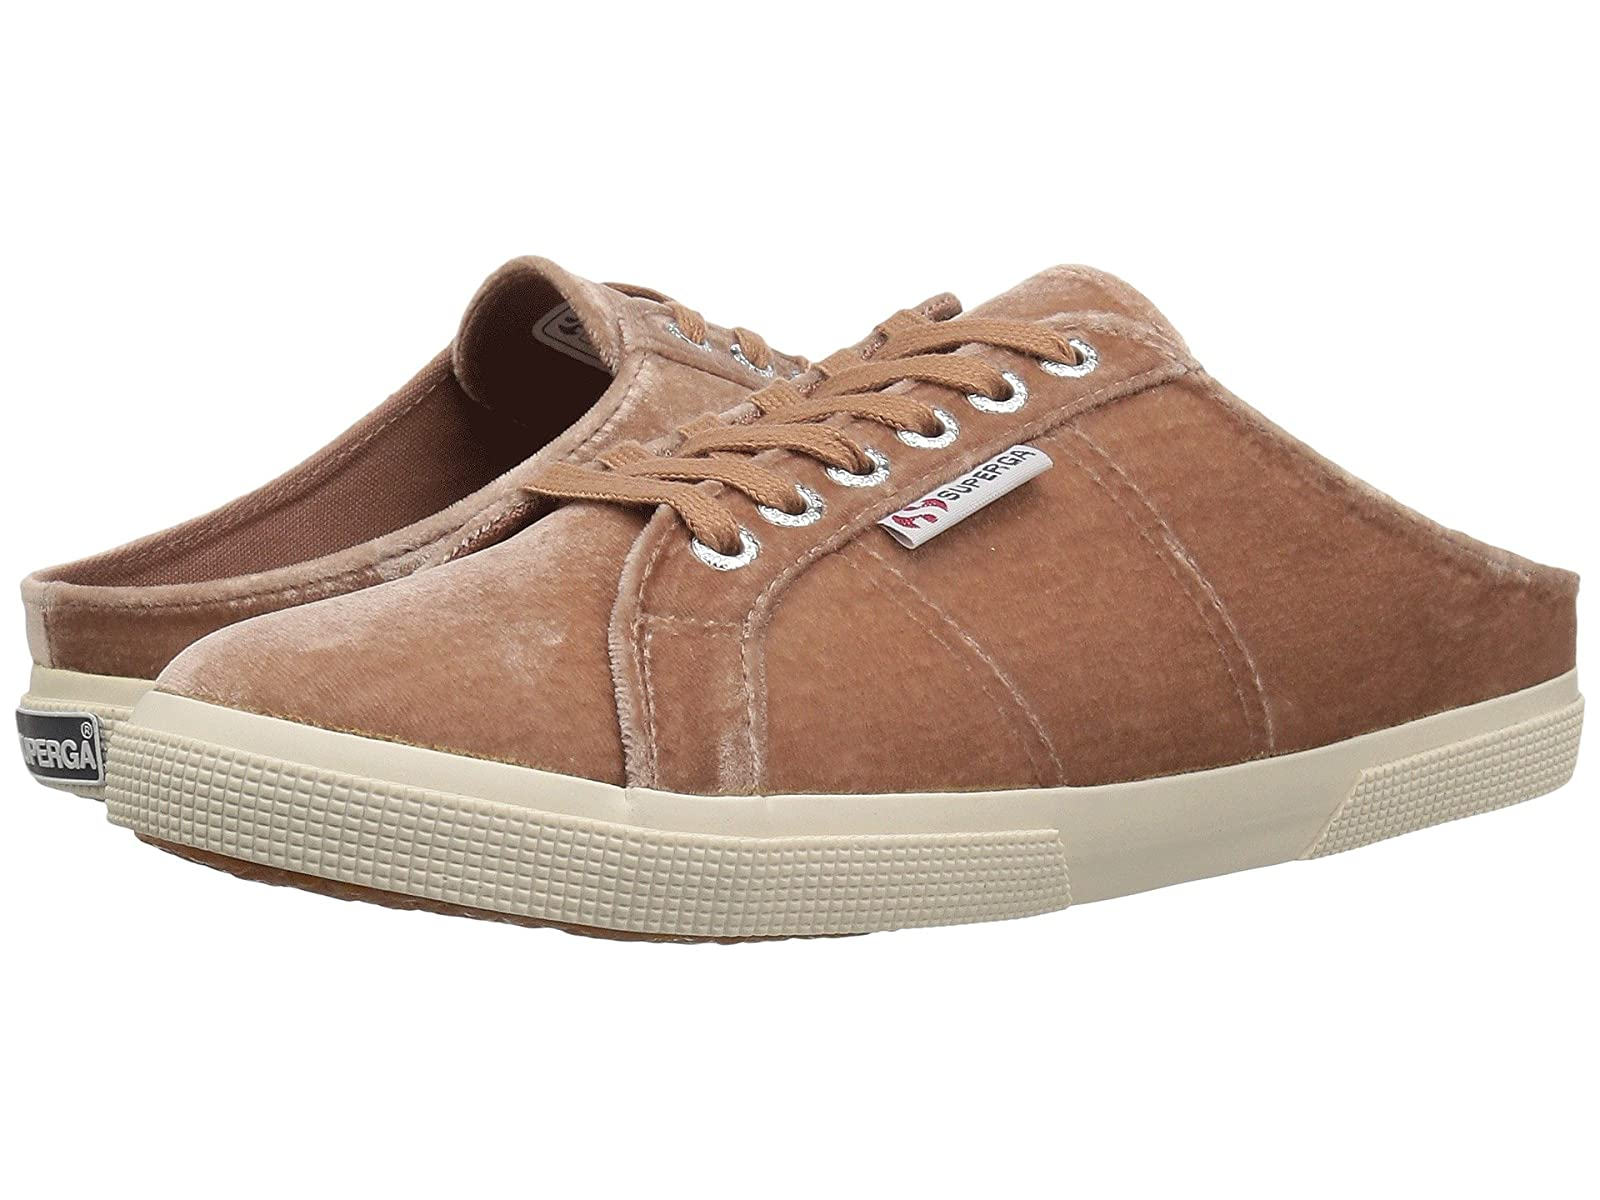 Superga 2288 CrushvellutowCheap and distinctive eye-catching shoes